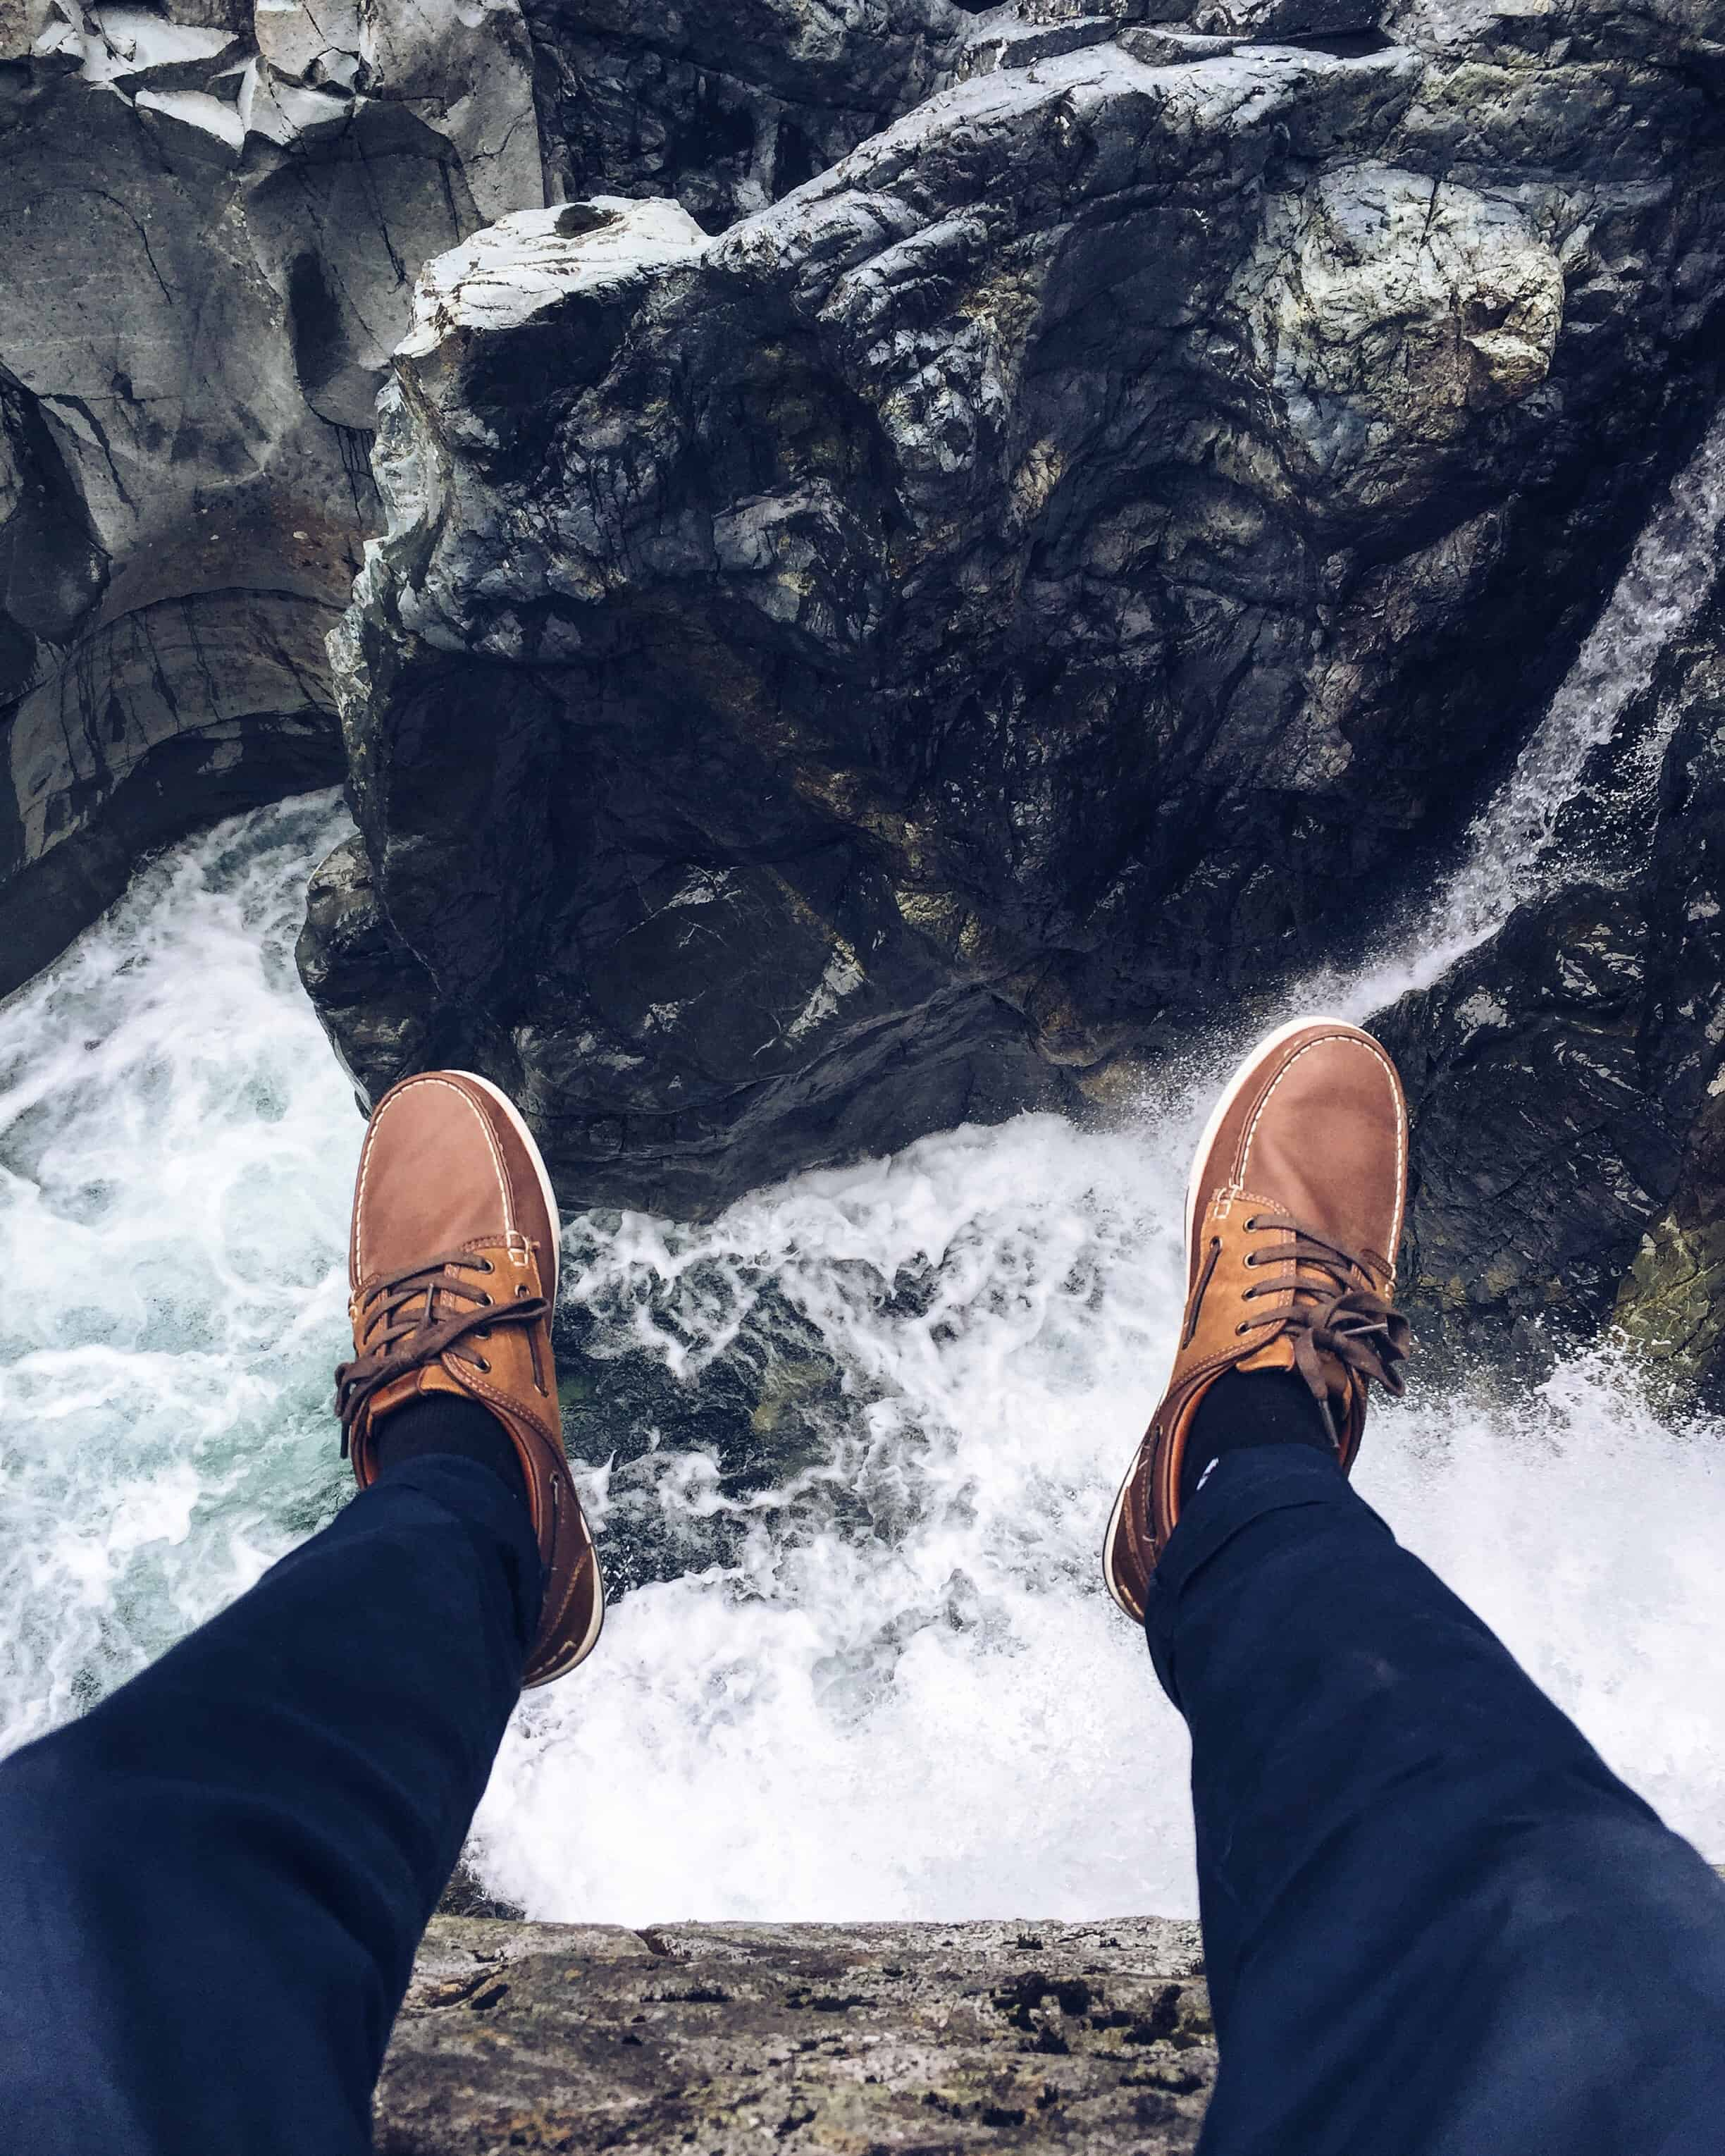 shoes and waterfall background